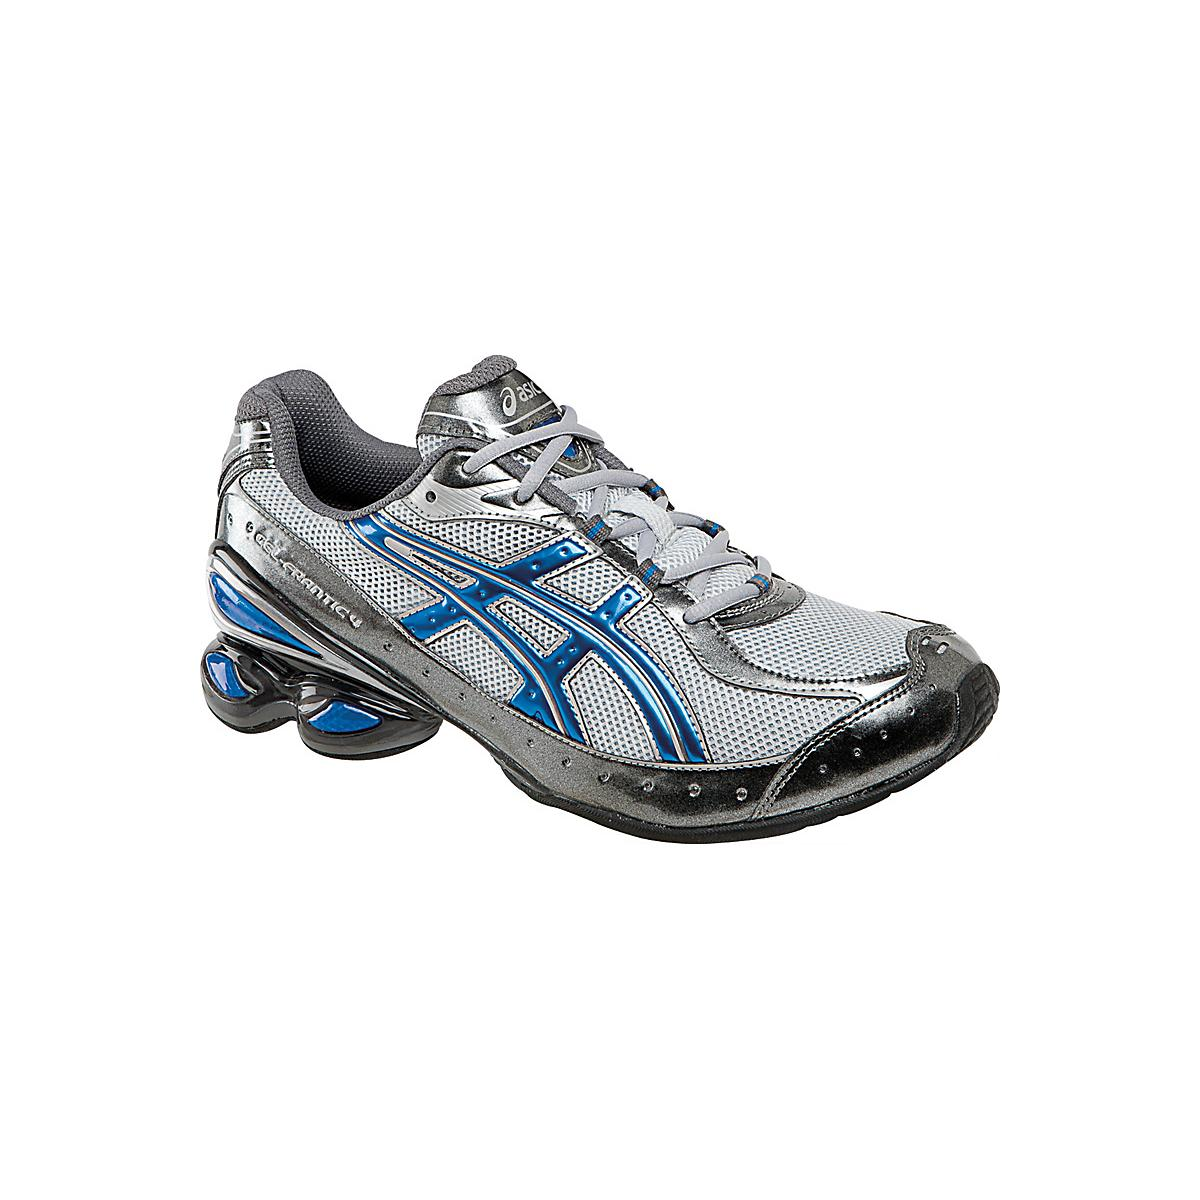 7714314b277 Mens ASICS GEL-Frantic 4 Running Shoe at Road Runner Sports